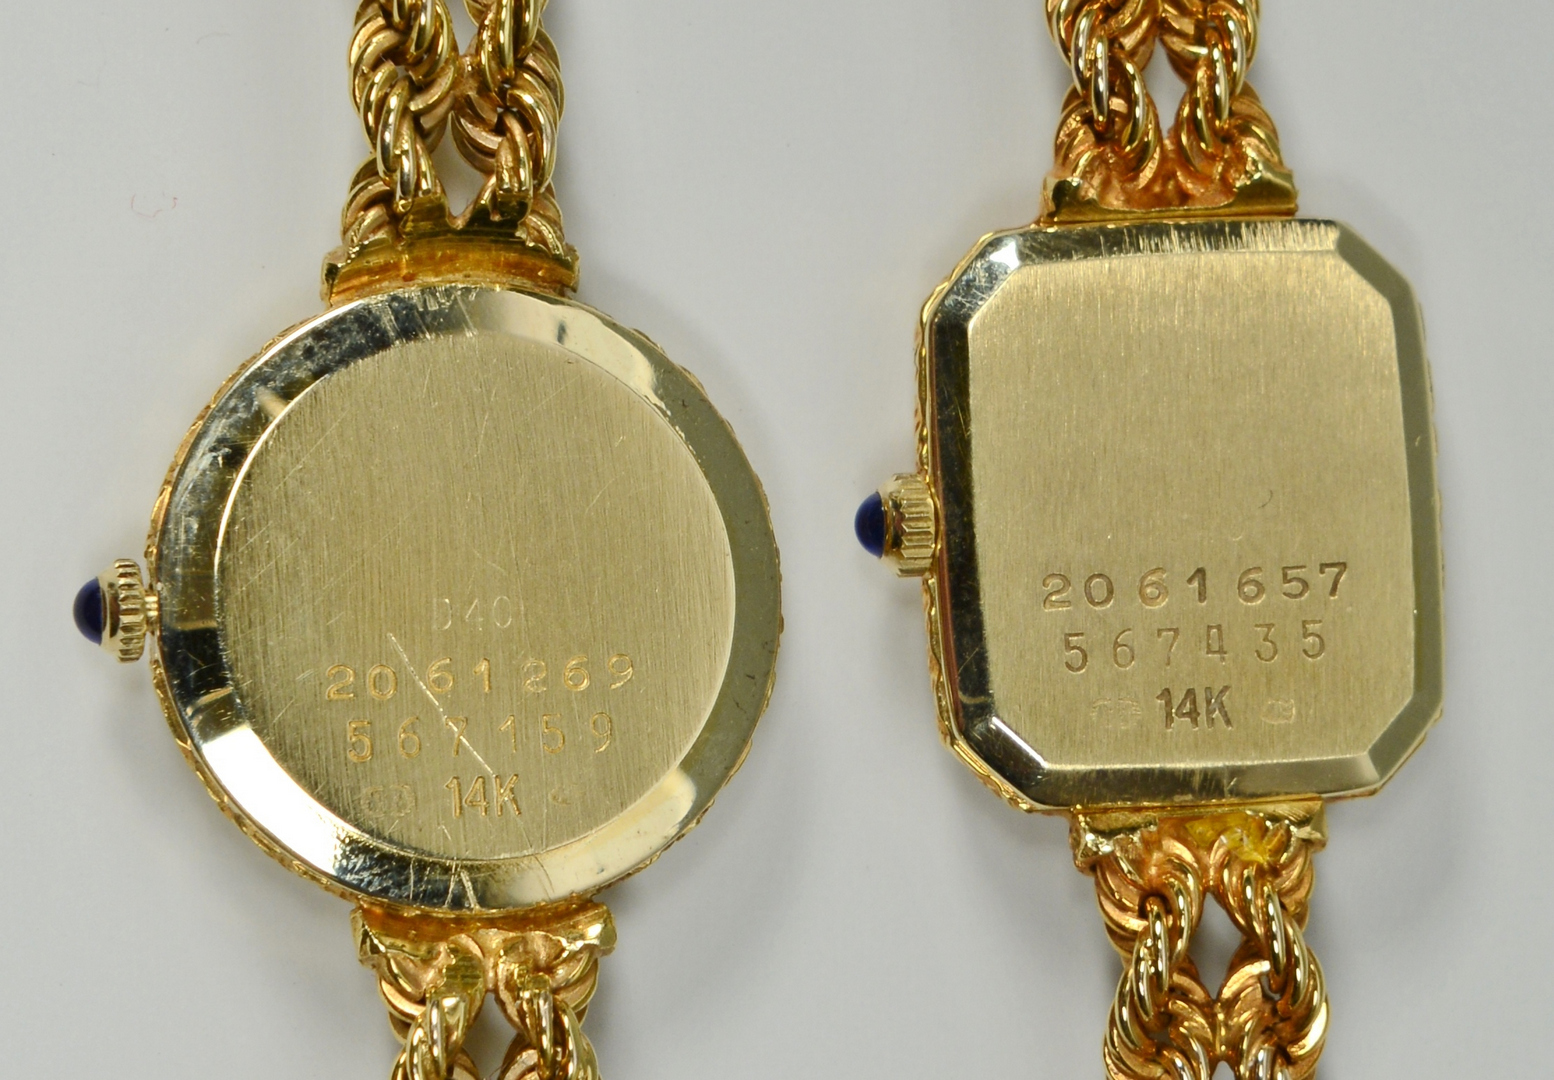 Lot 3088053: 2 Concord 14k Ladies Watches